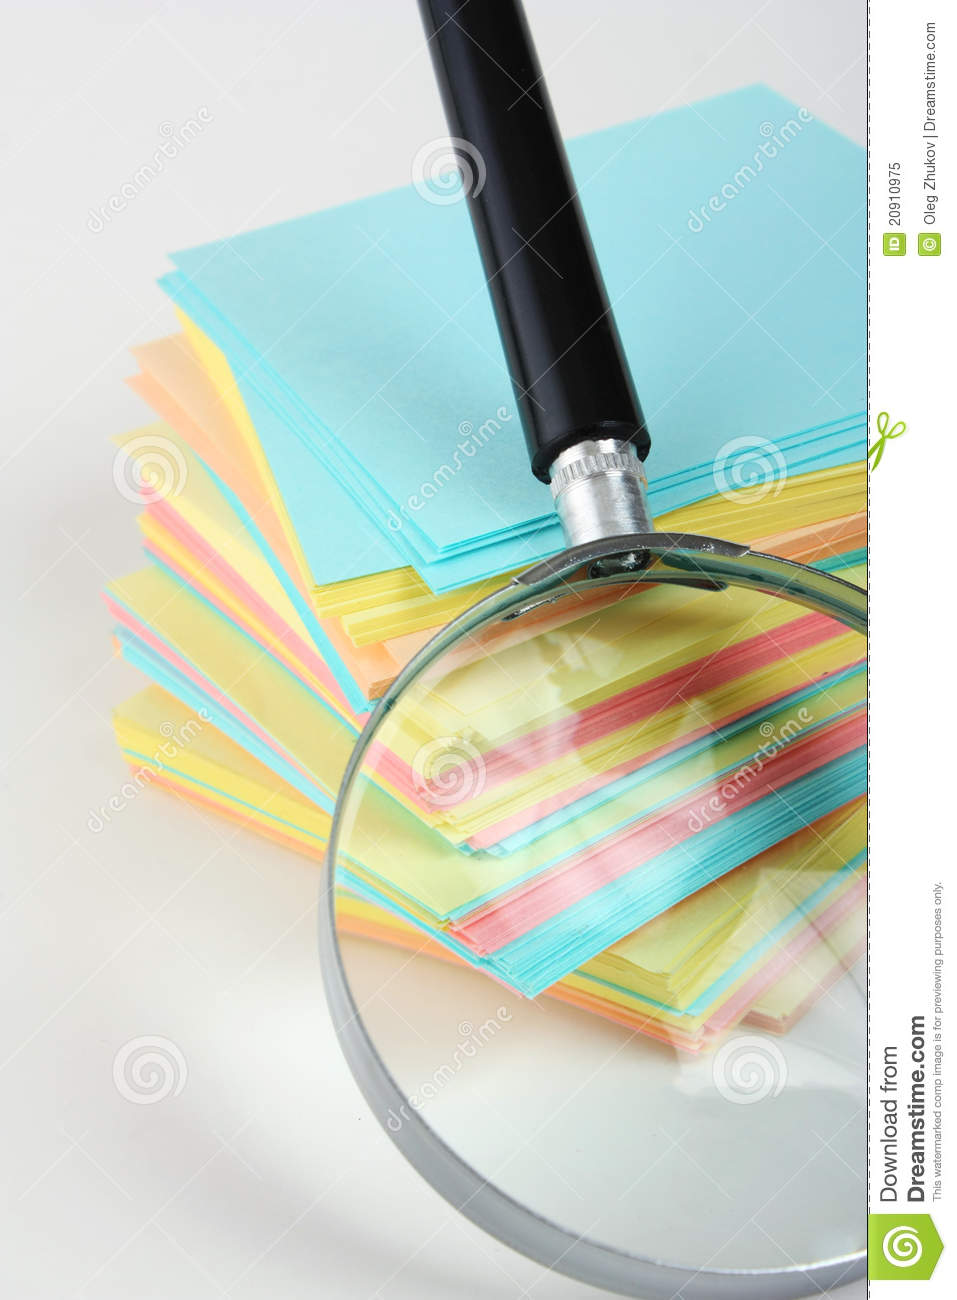 Magnifier Enlarges The Stack Of Sheets Stock Image - Image ...